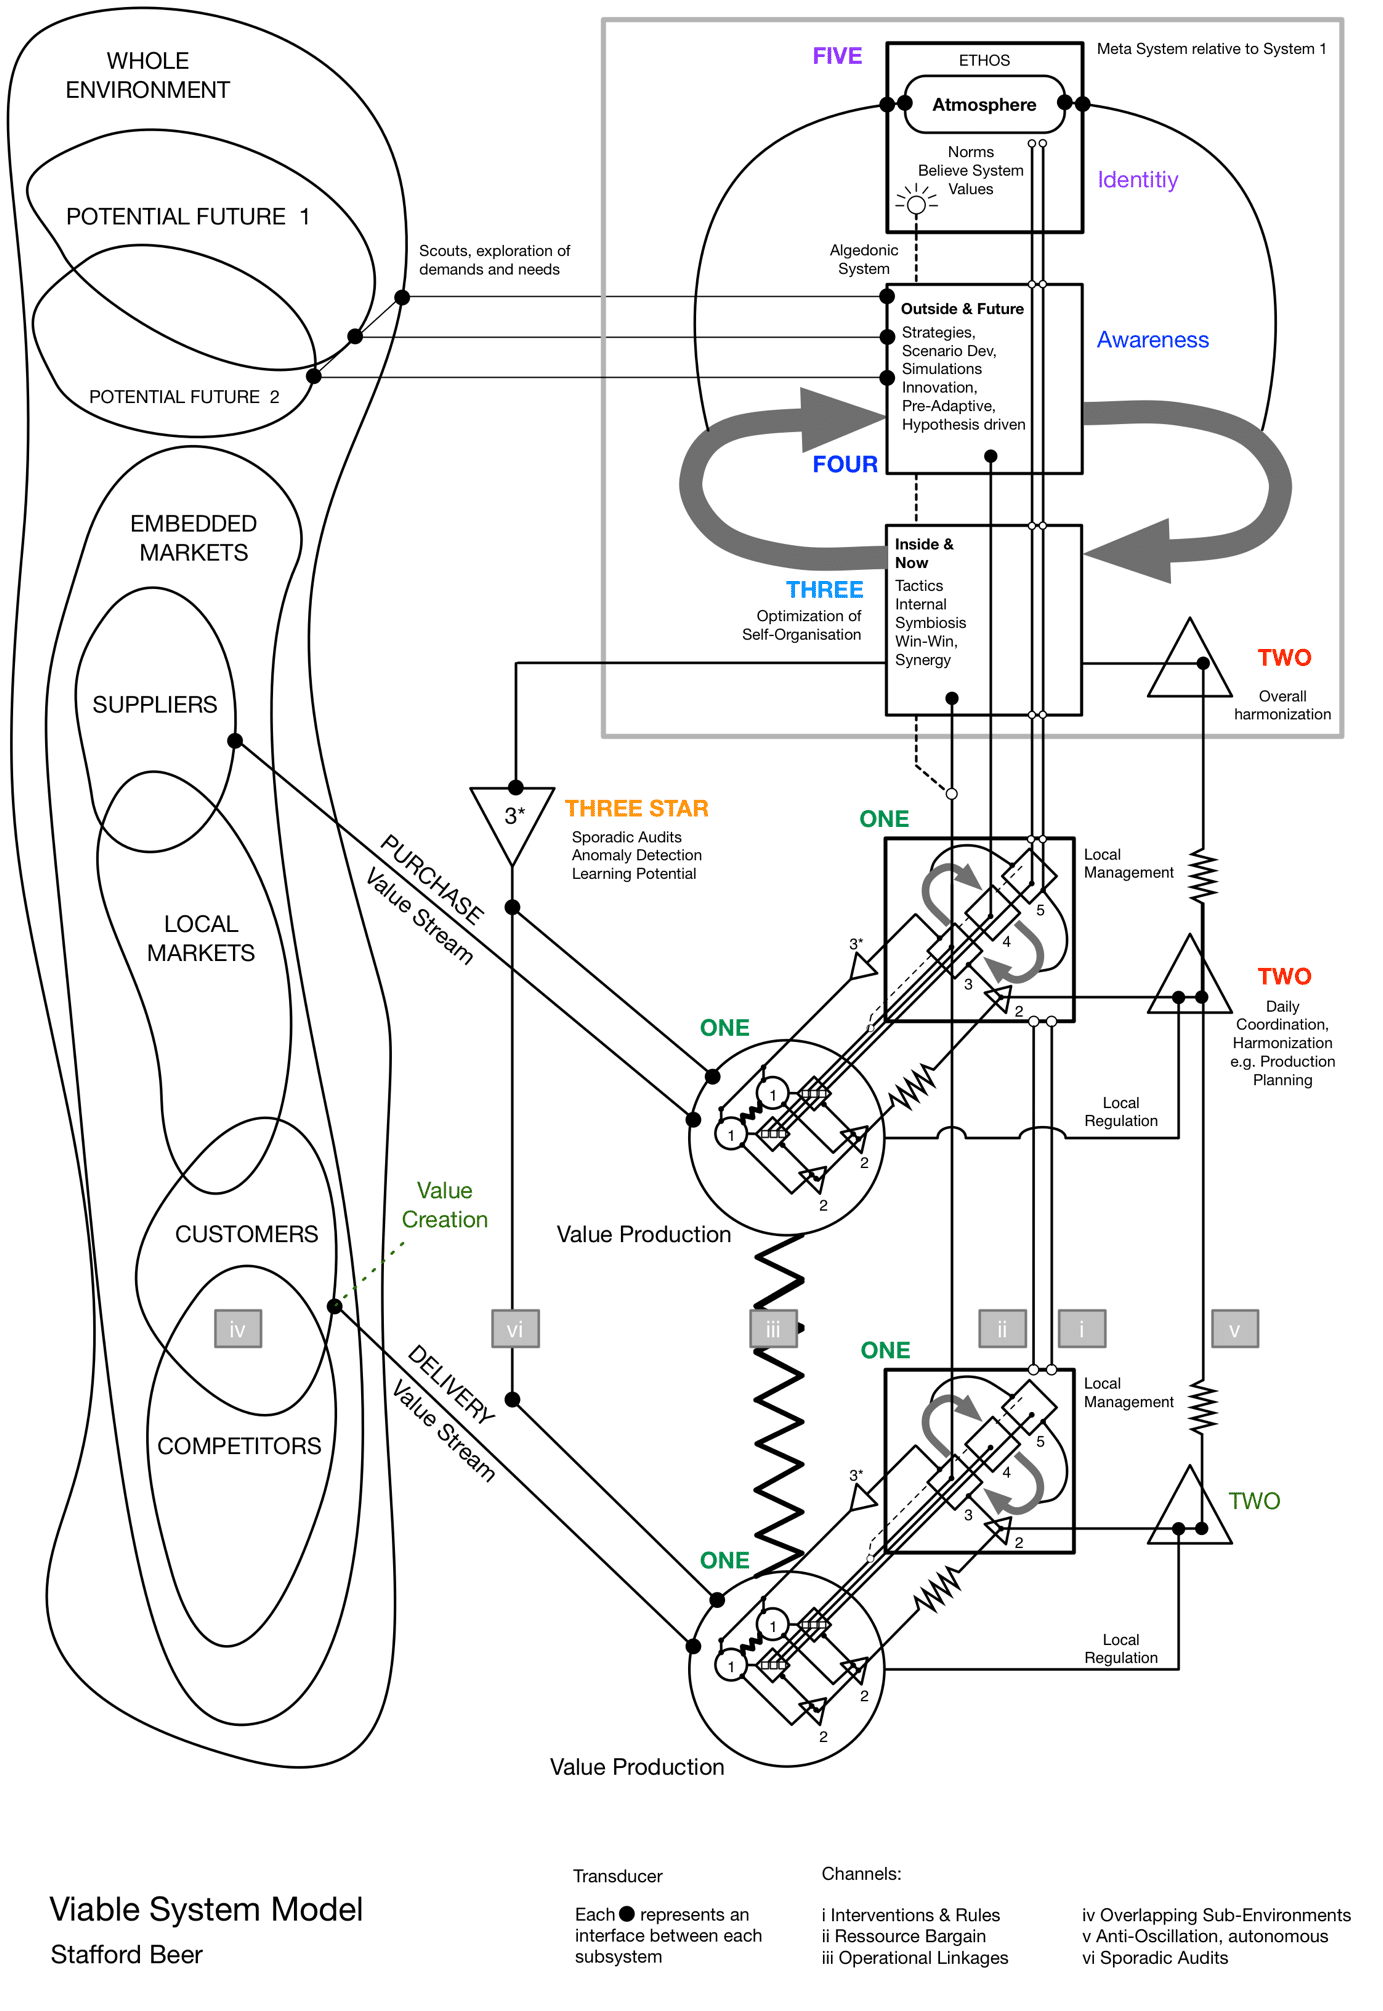 Viable System Model